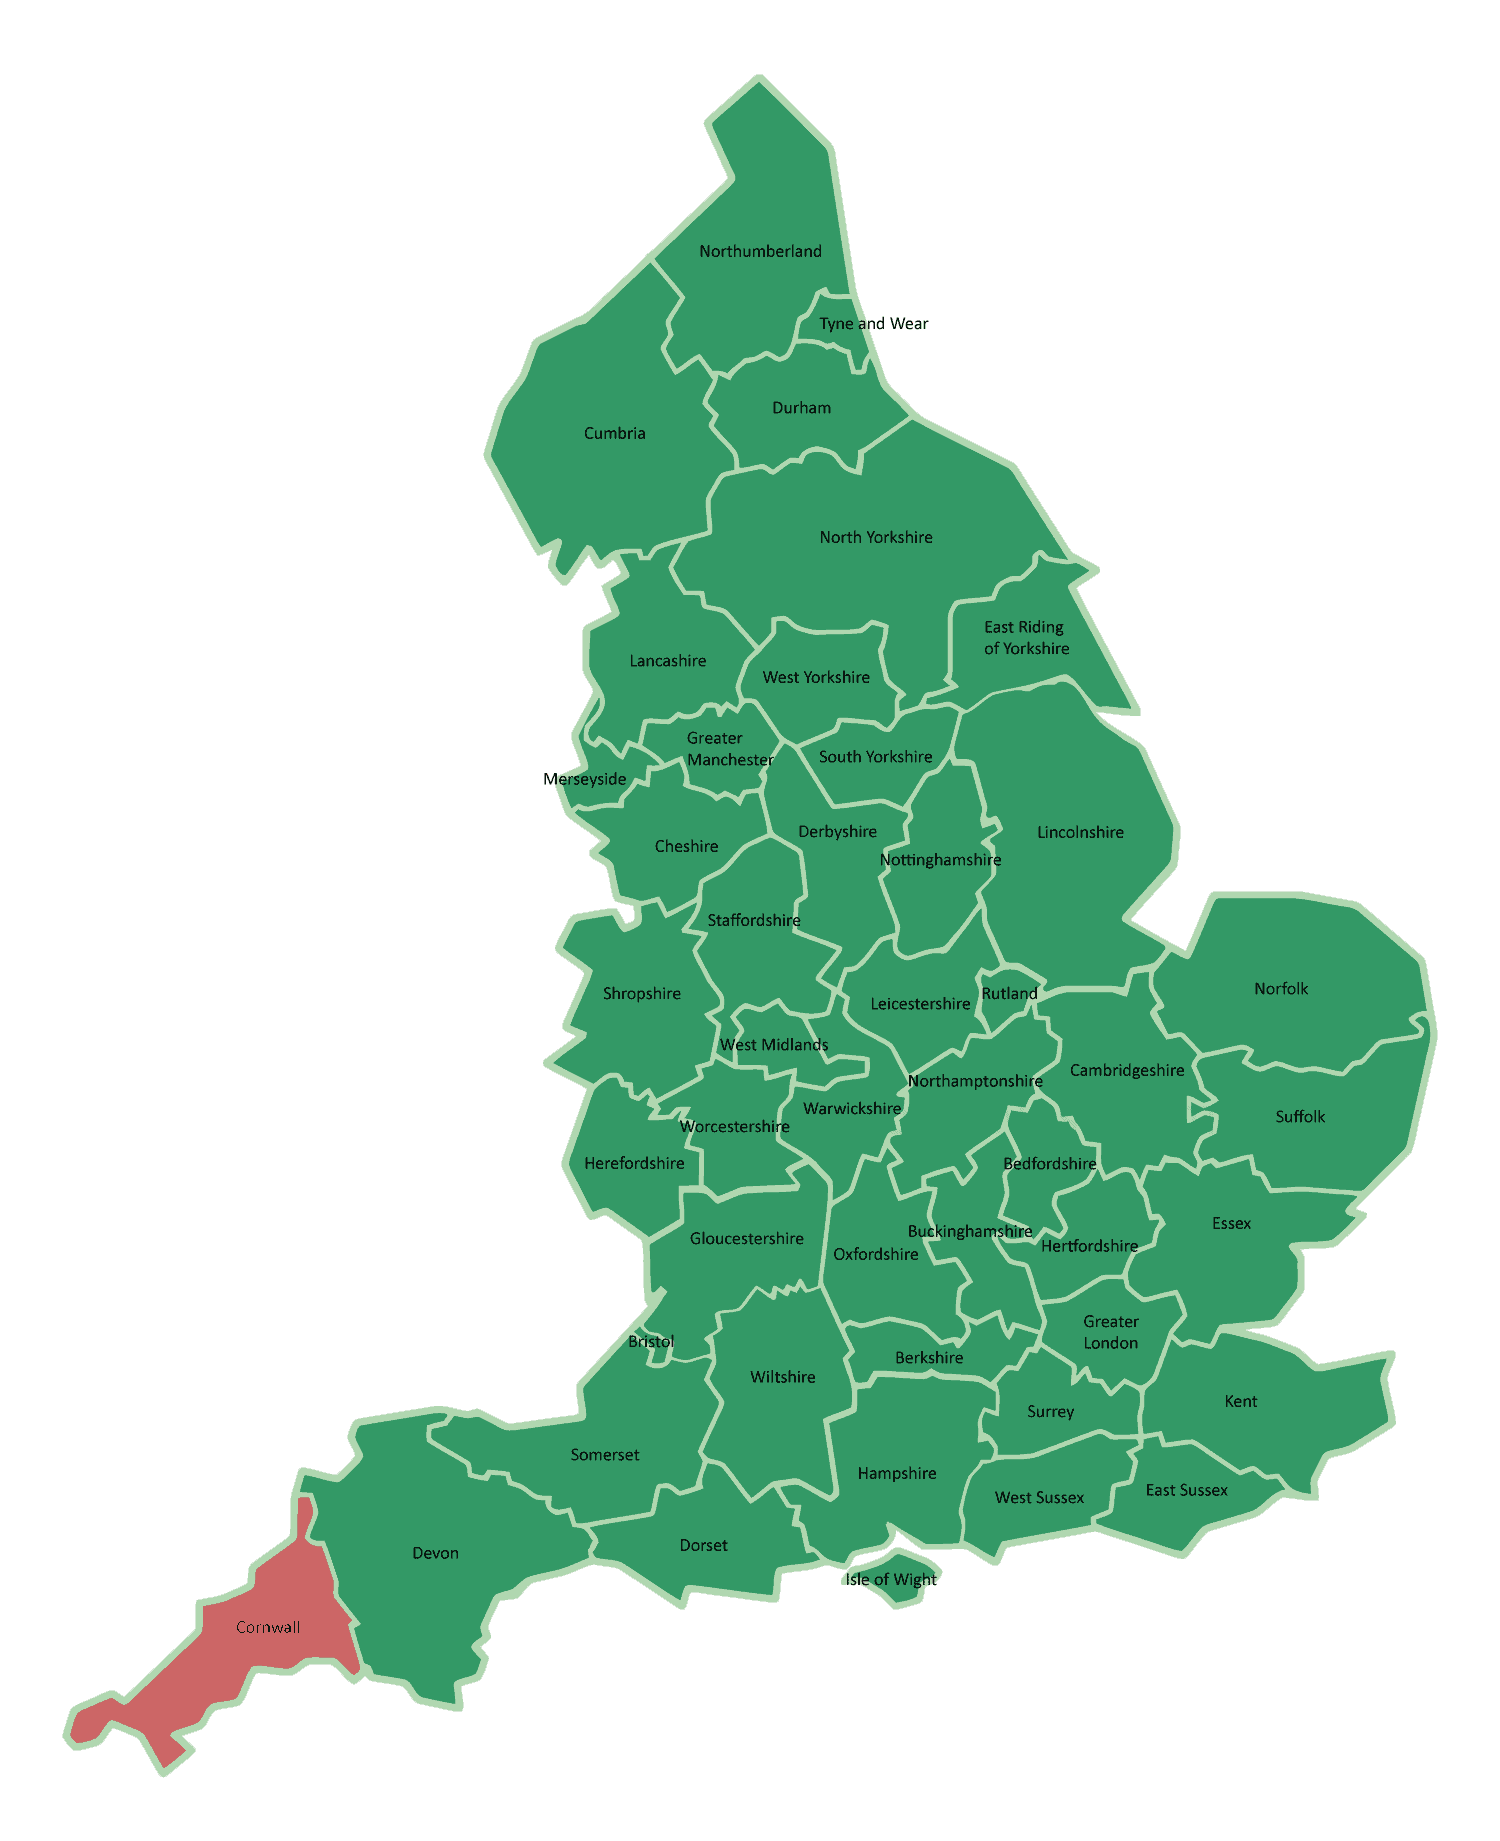 Interactive Map Of Cornwall, England - Download Free ...